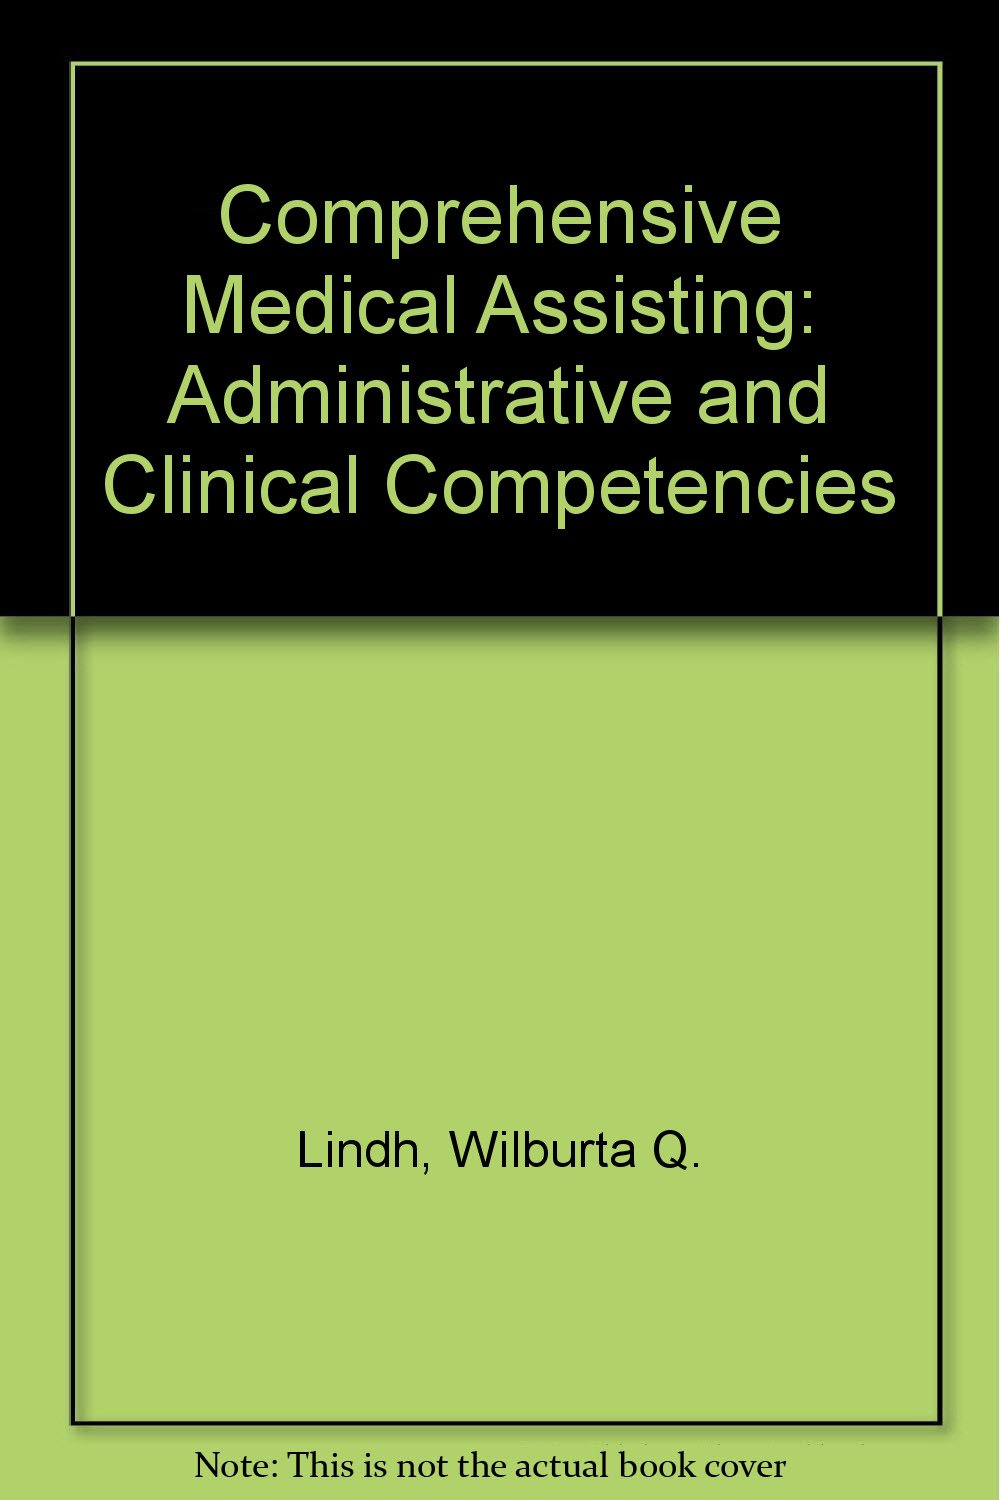 Comprehensive Medical Assisting: Administrative and Clinical Competencies:  Wilburta Q. Lindh, Marilyn S. Pooler, Carol D. Tamparo, Joanne U. Cerrato:  ...